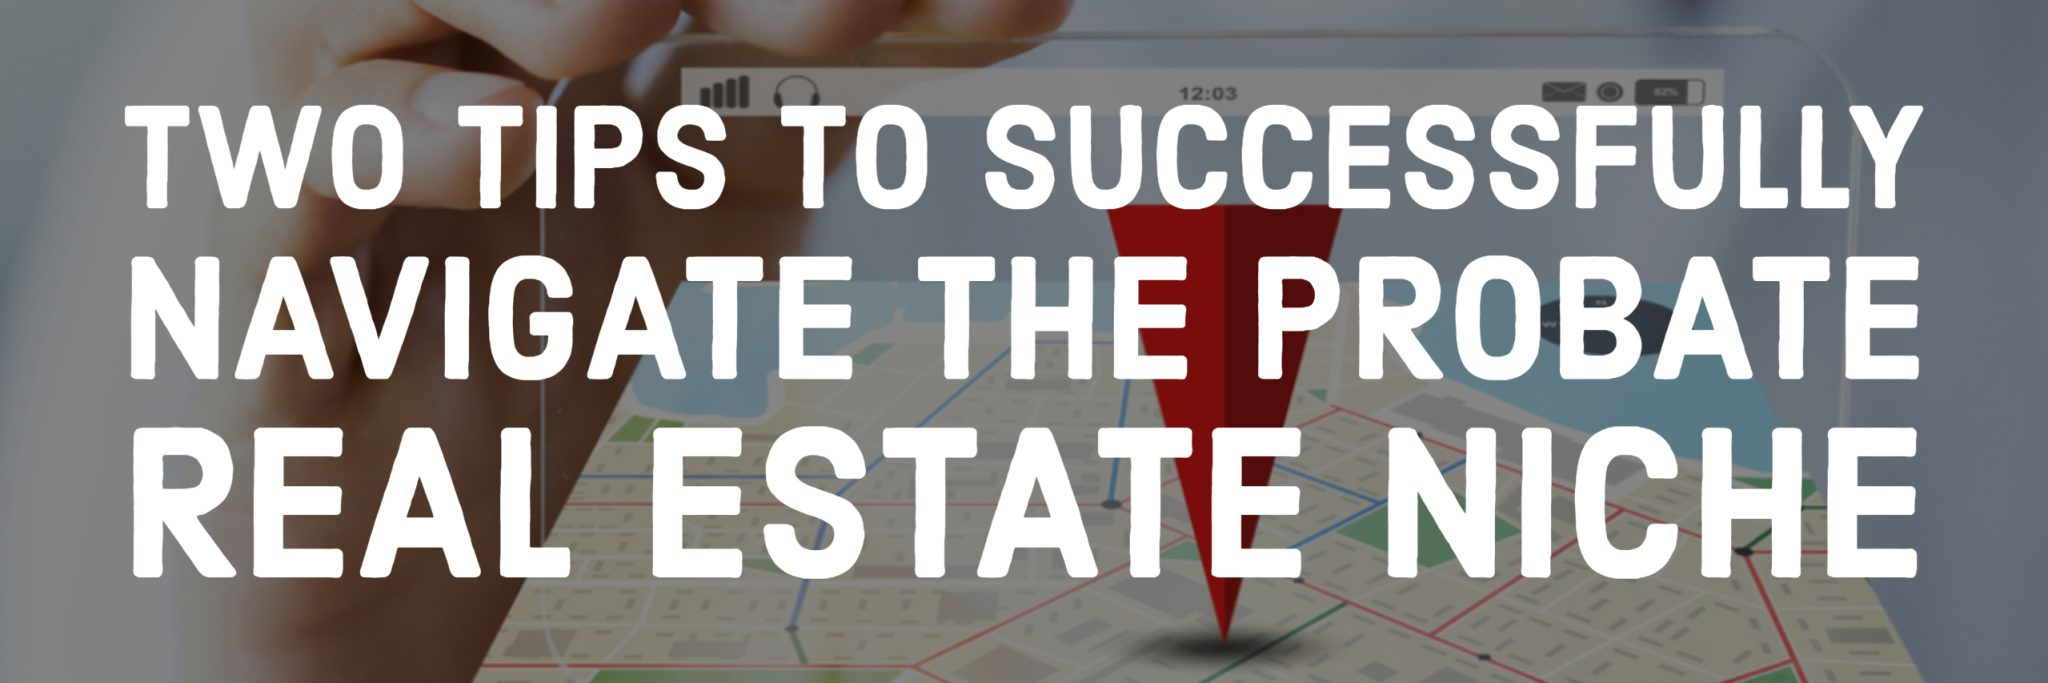 Best real estate company to work for best training for new real estate agents real estate agent coaching real estate agent training best real estate company in Los Angeles (14)